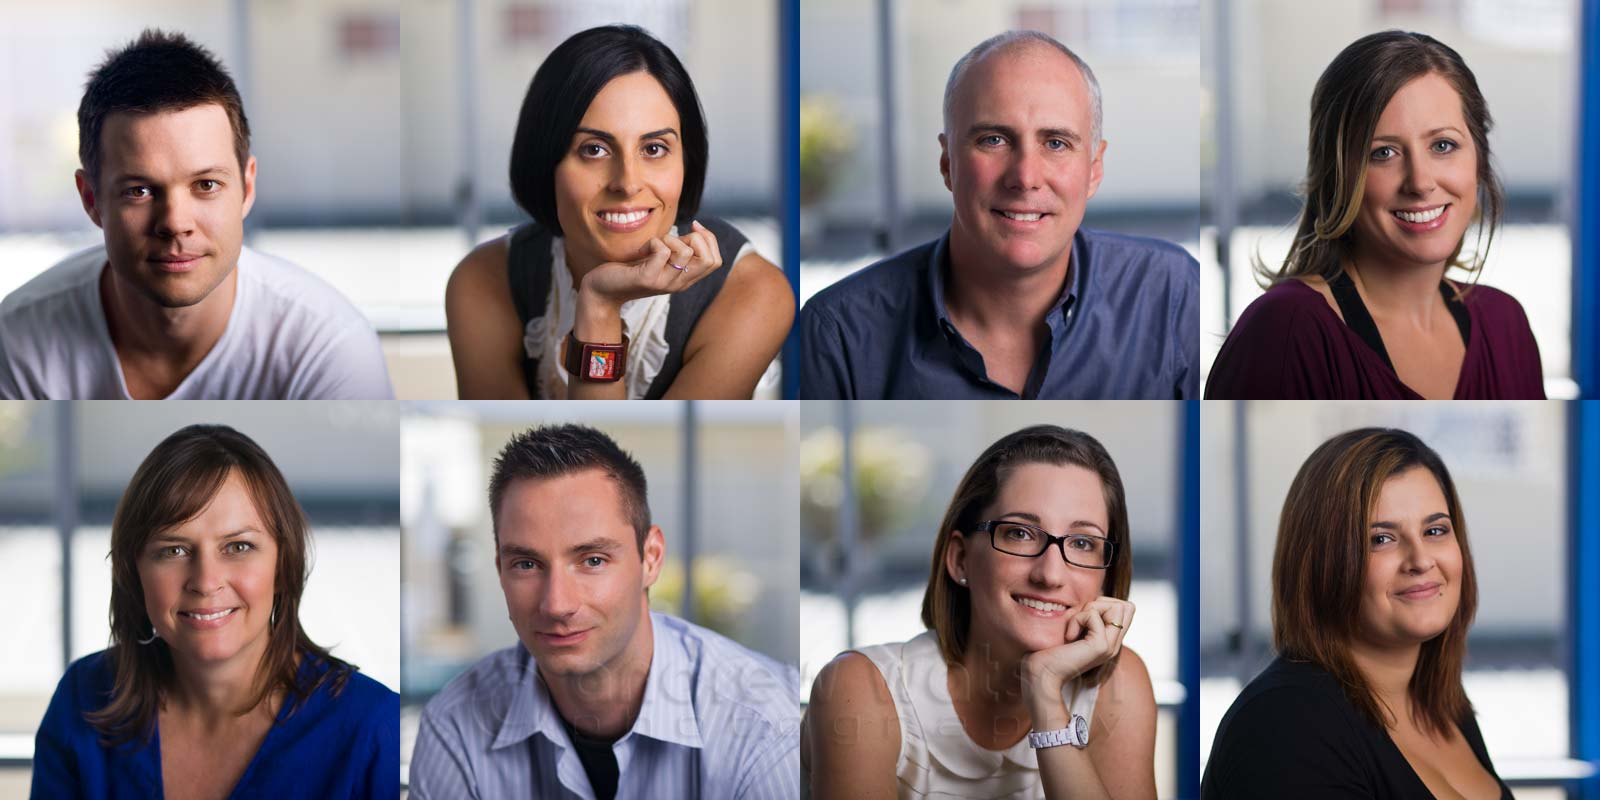 Examples of corporate headshots for a Cairns tourism marketing company